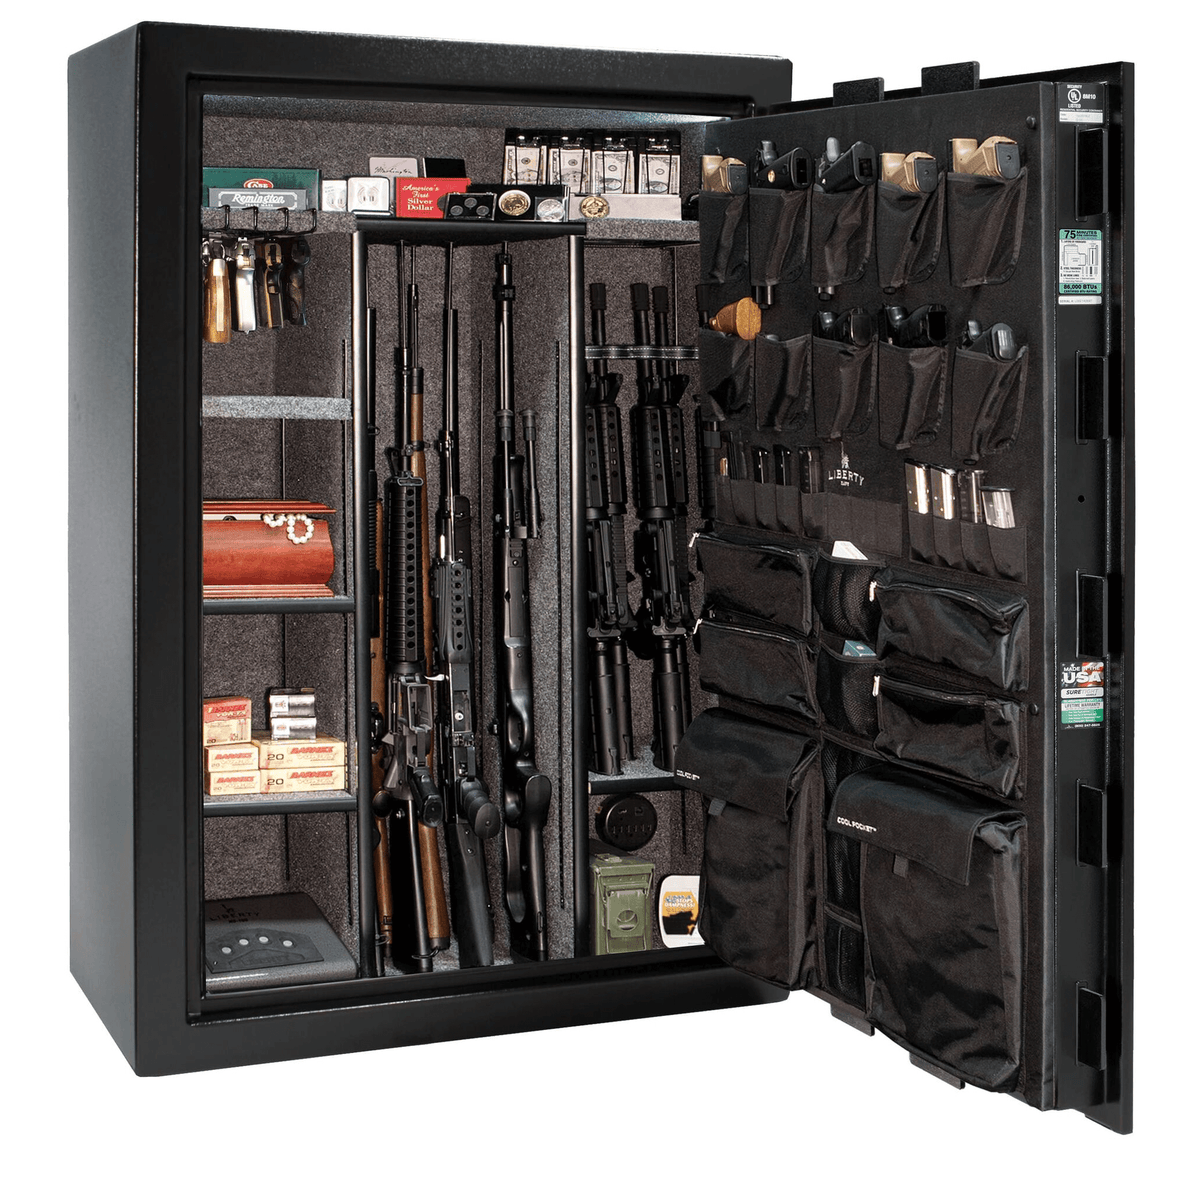 "Fatboy Extreme -Level 4 Security - 75 Minute Fire Protection - Black - Electronic Lock - Dimensions: 60.5""(H) x 42""(W) x 32""(D)"